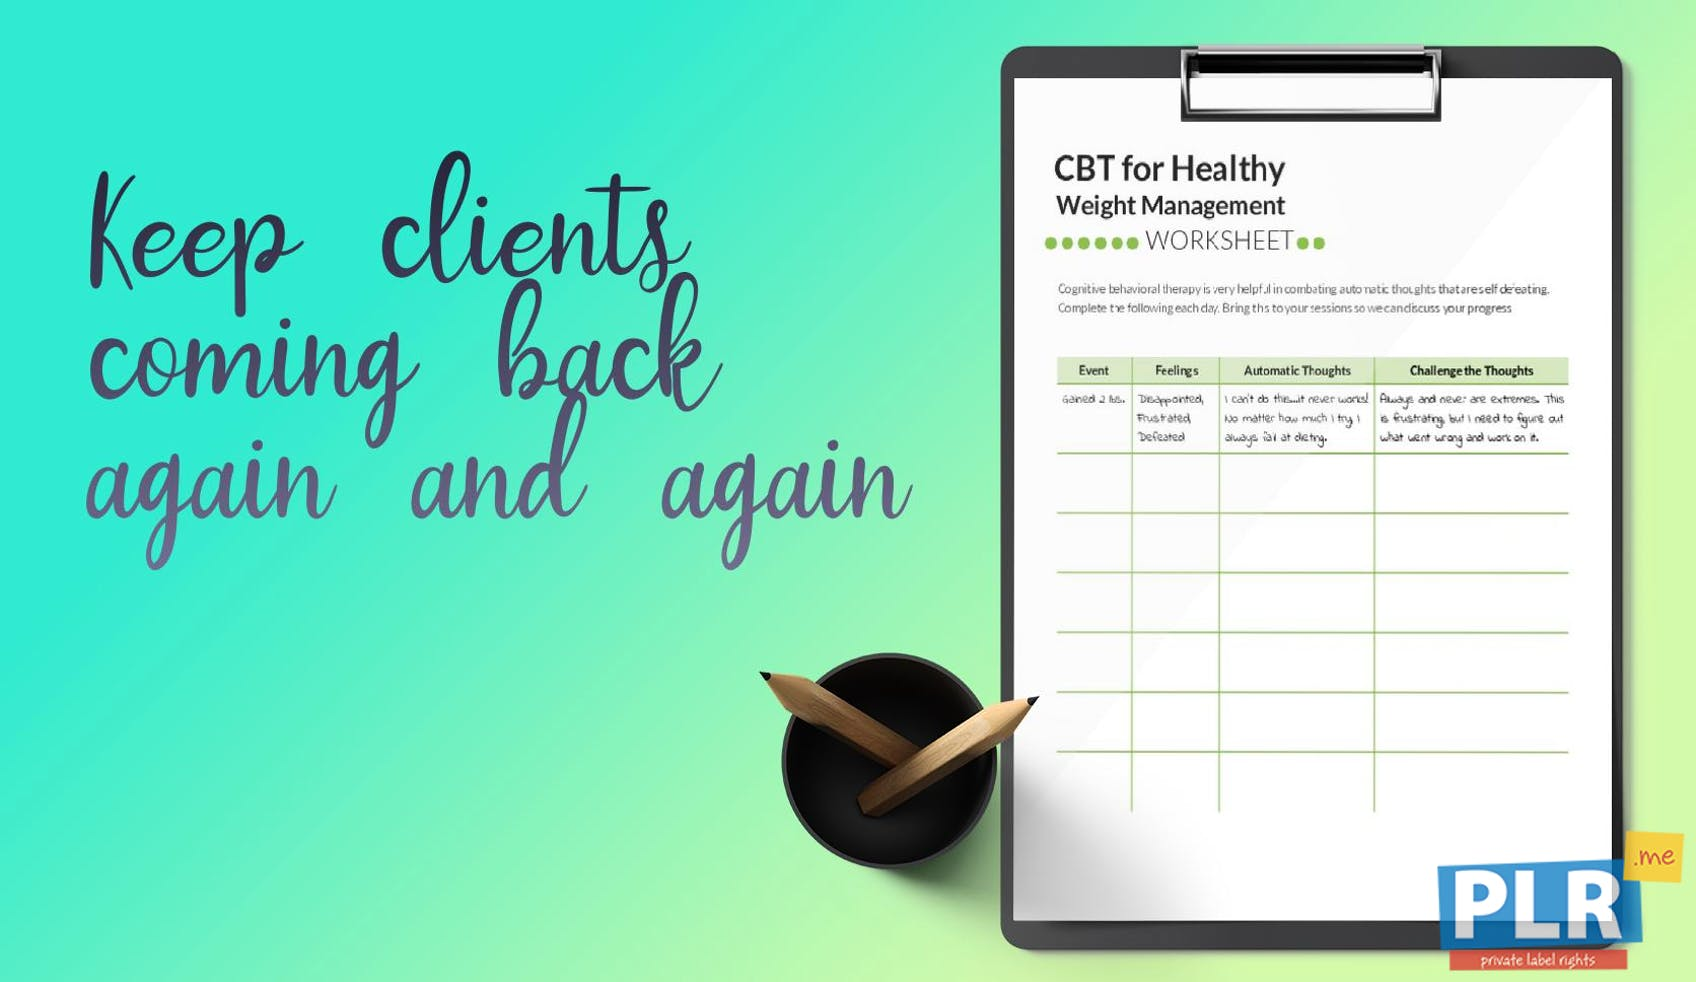 PLR Worksheets - Cbt For Healthy Weight Management Worksheet - PLR.me